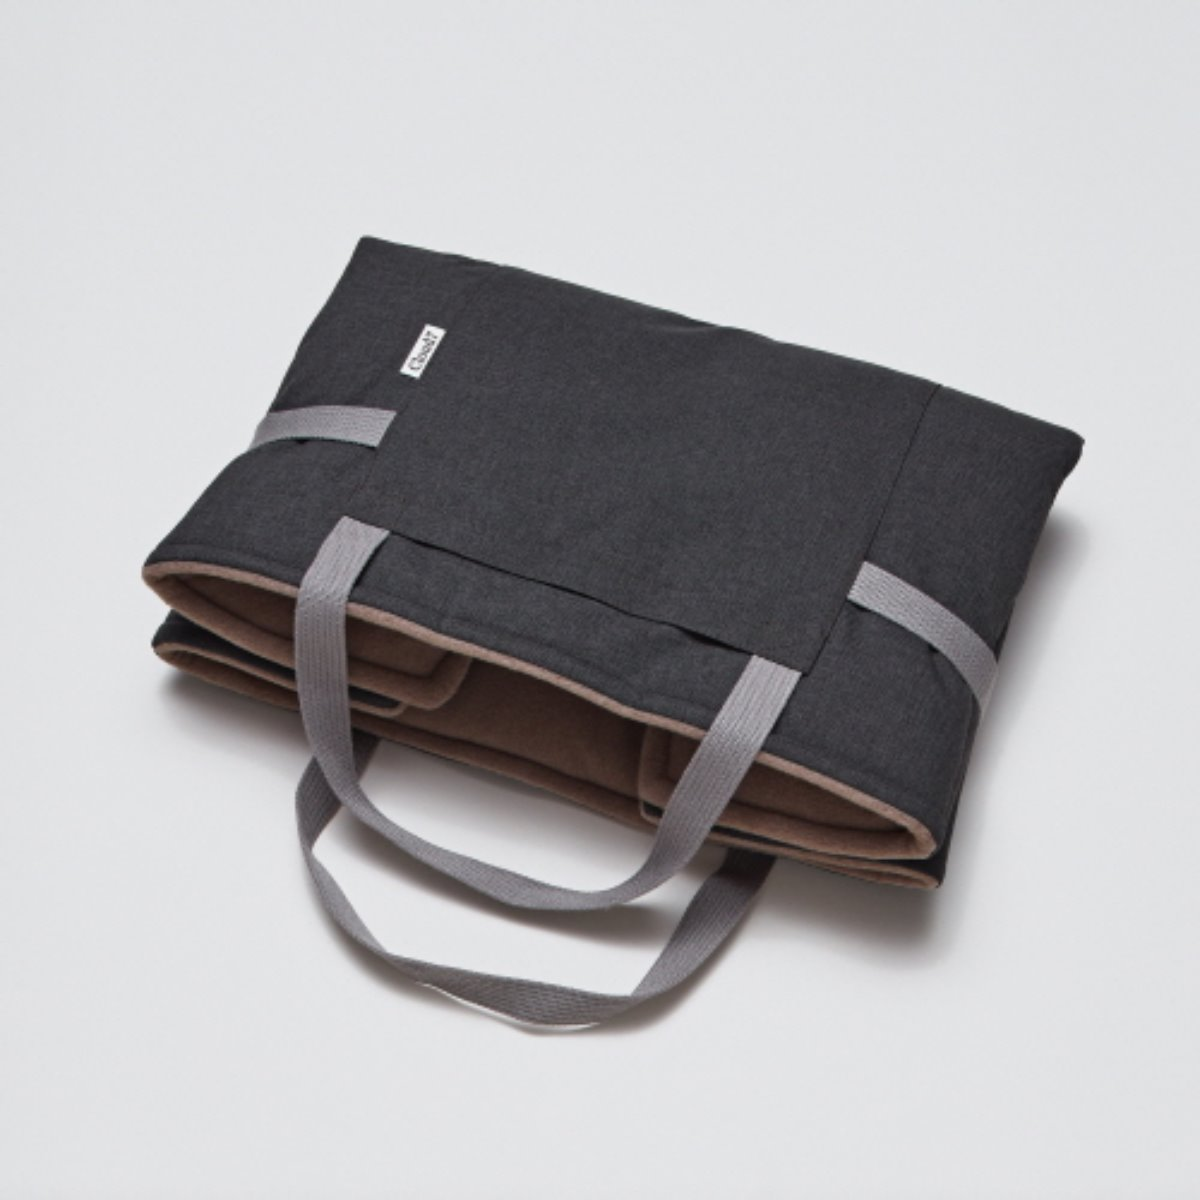 TRAVEL BED WATERPROOF GRAPHITE - SAND